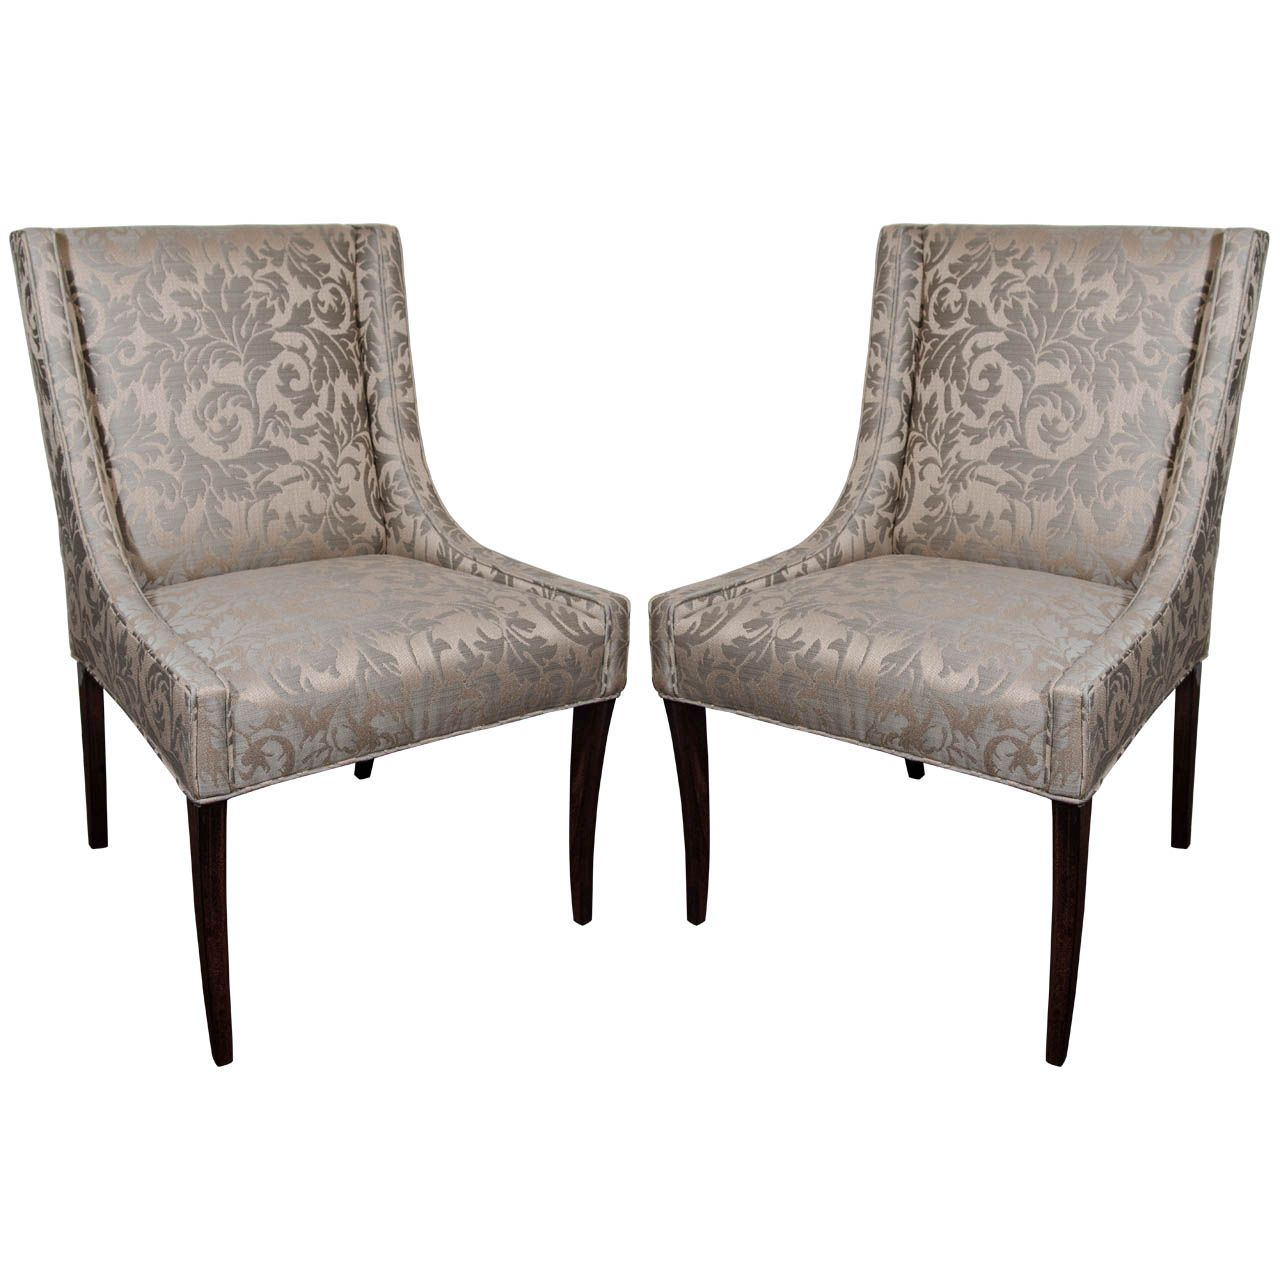 Great Pair Of Elegant Upholstered Occasional Chairs With High Back Design